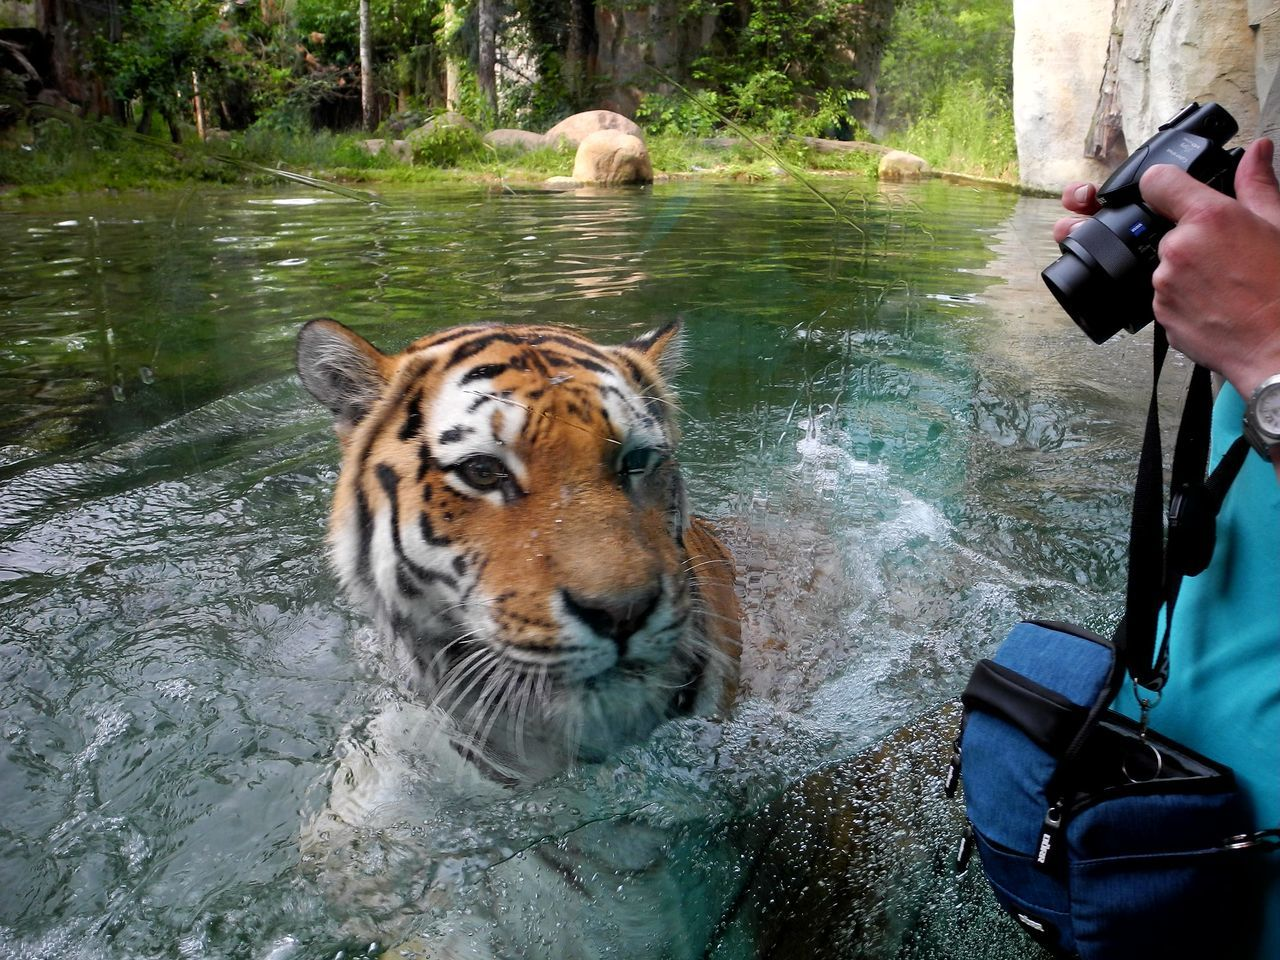 Water Animal Themes One Person Outdoors People Nature Nature Outdorphotography TigerCat Tigers❤ Outdoor Photography Close-up Animal Wildlife